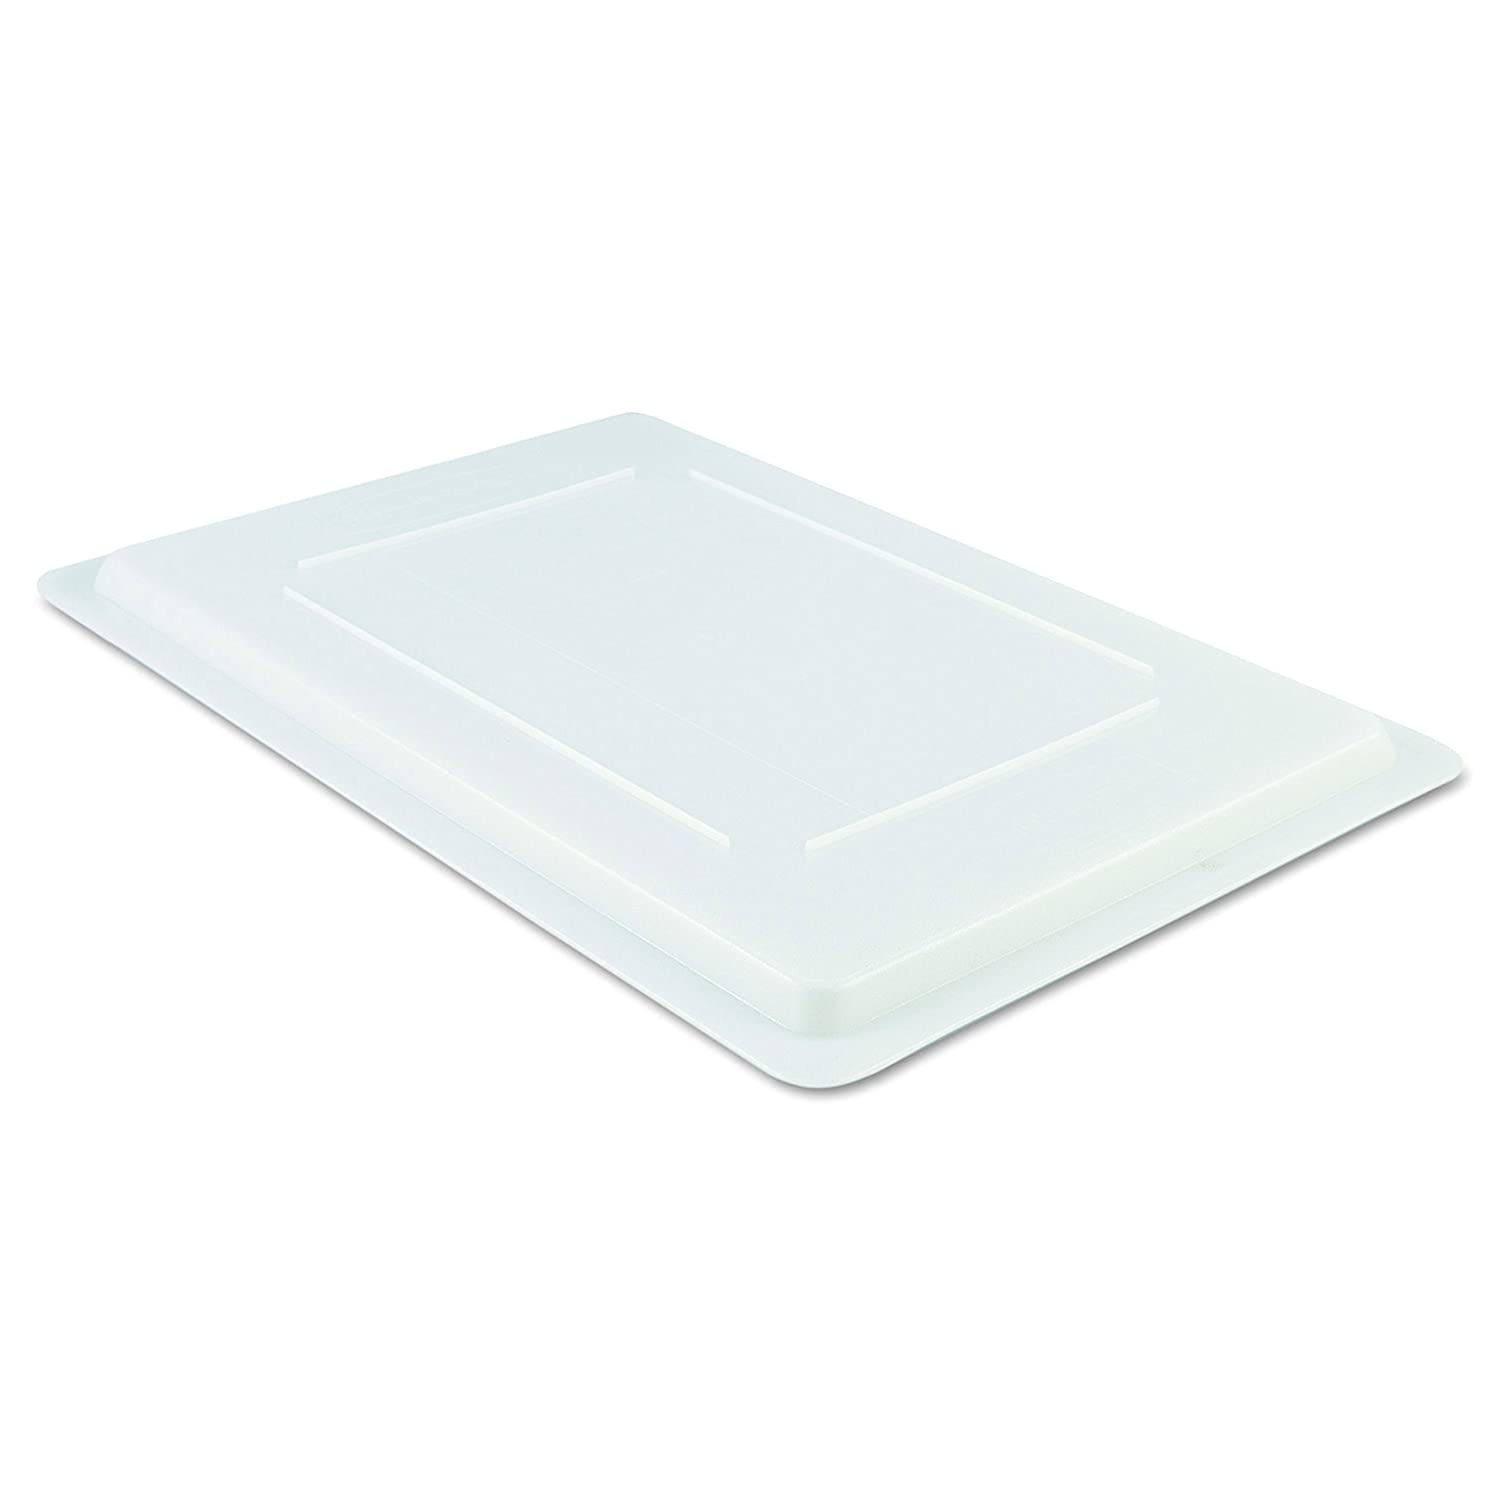 Rubbermaid Commercial 3502WHI Food/Tote Box Lids, 26 w x 18 d, White